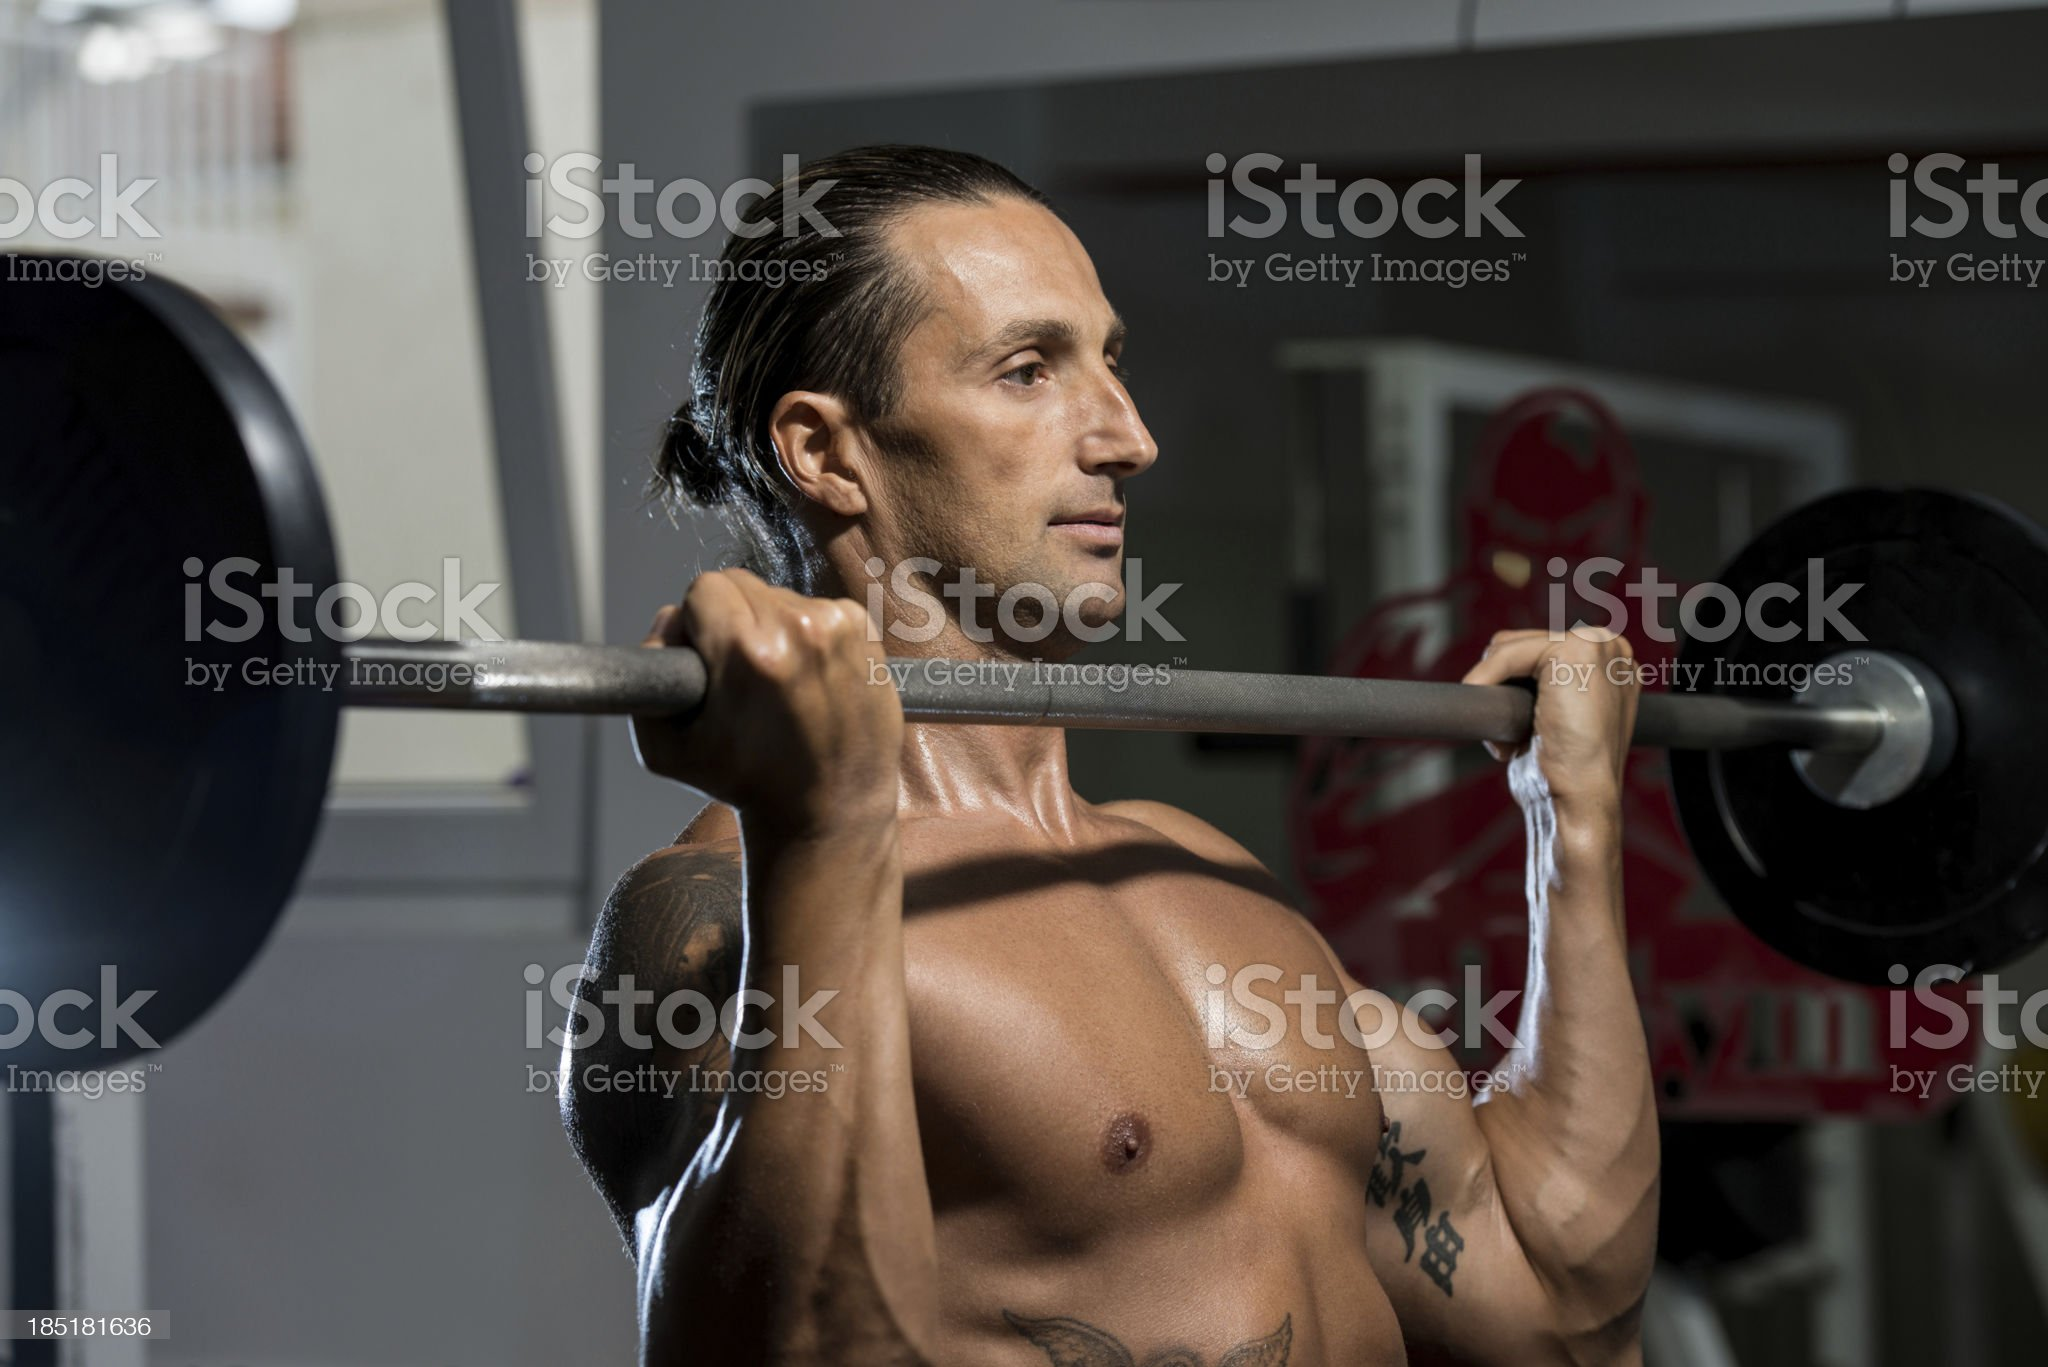 Man In The Gym Exercising Biceps With Barbell royalty-free stock photo